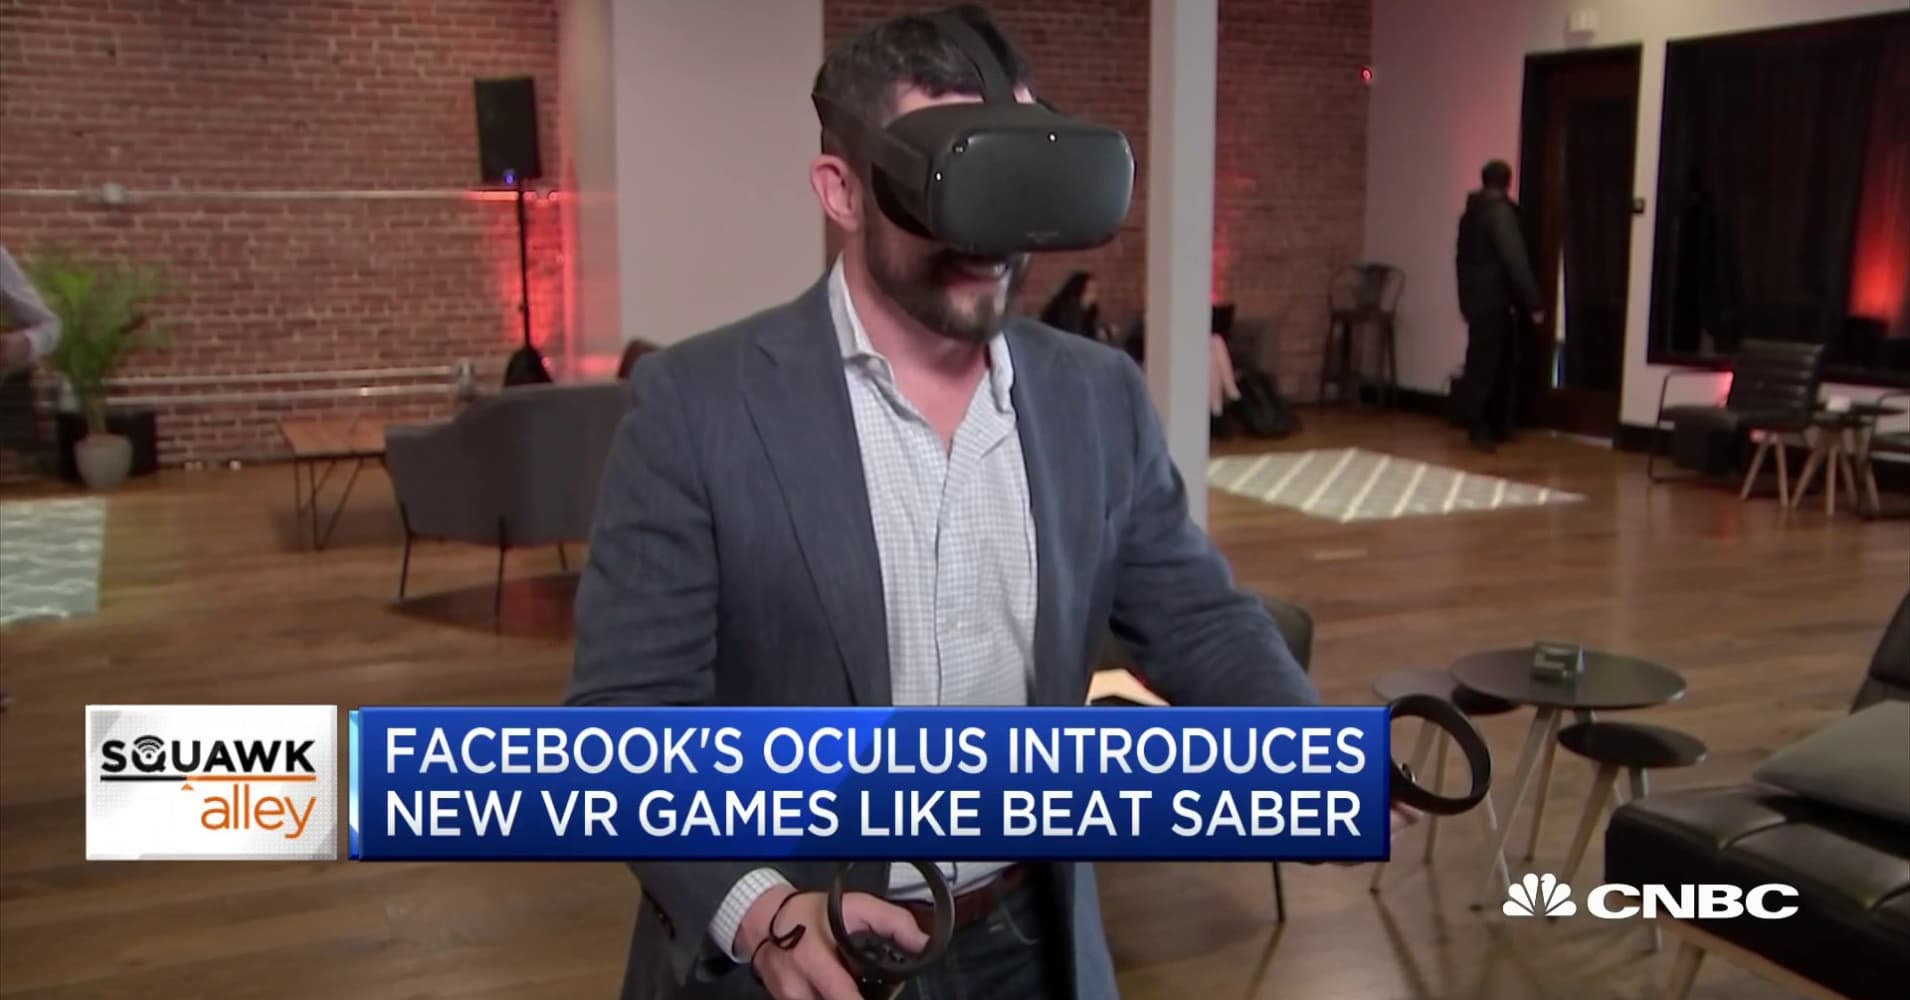 Facebook's Oculus unveils new virtual reality headset